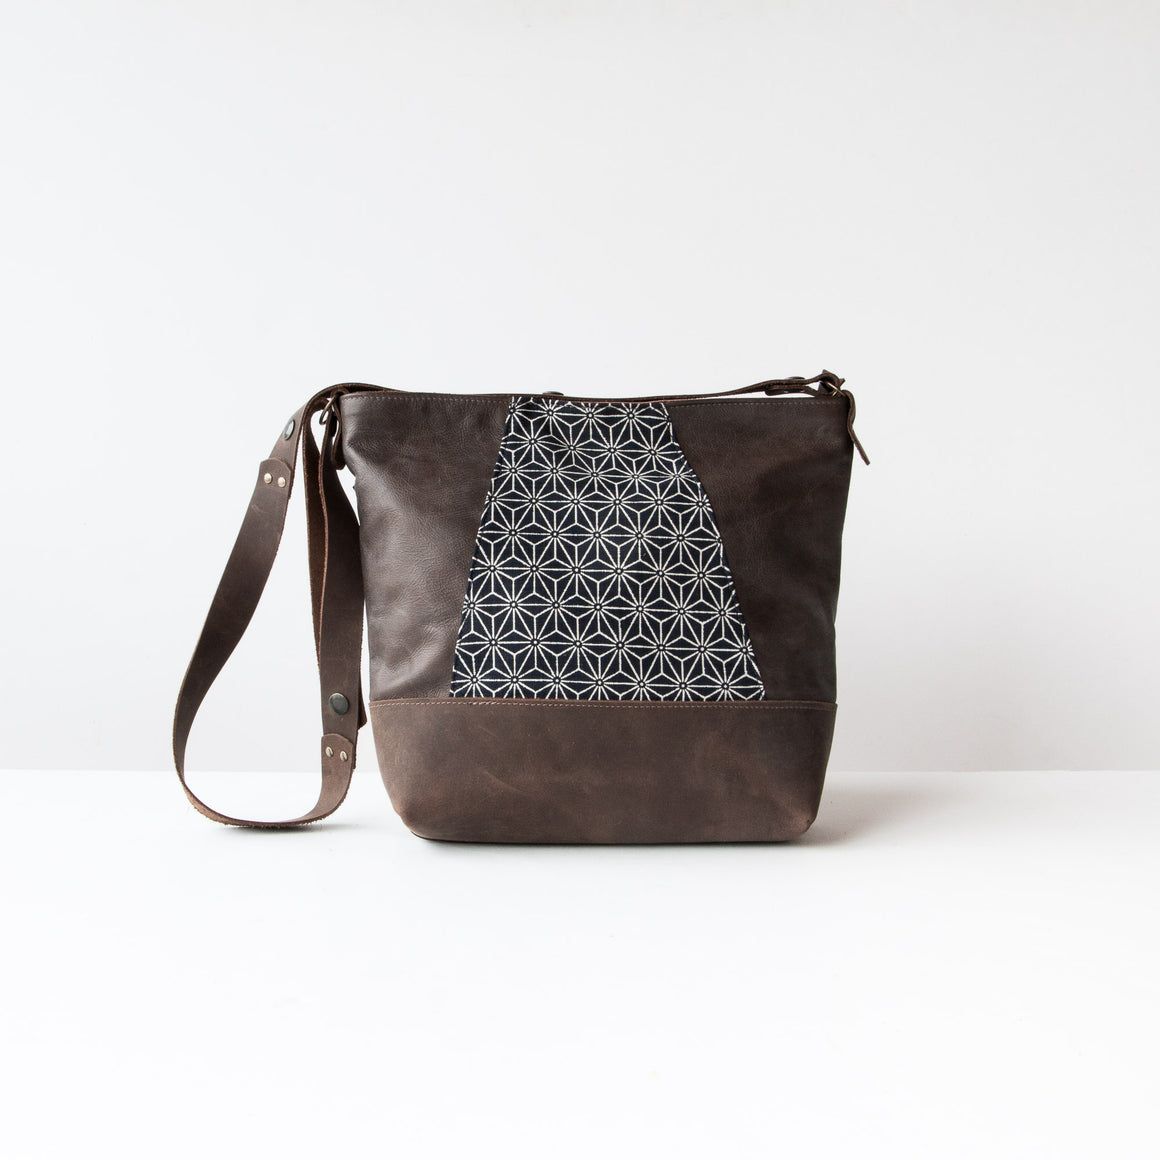 Handmade Leather Shoulder Bag With Japanese Pattern - Sold by Chic & Basta